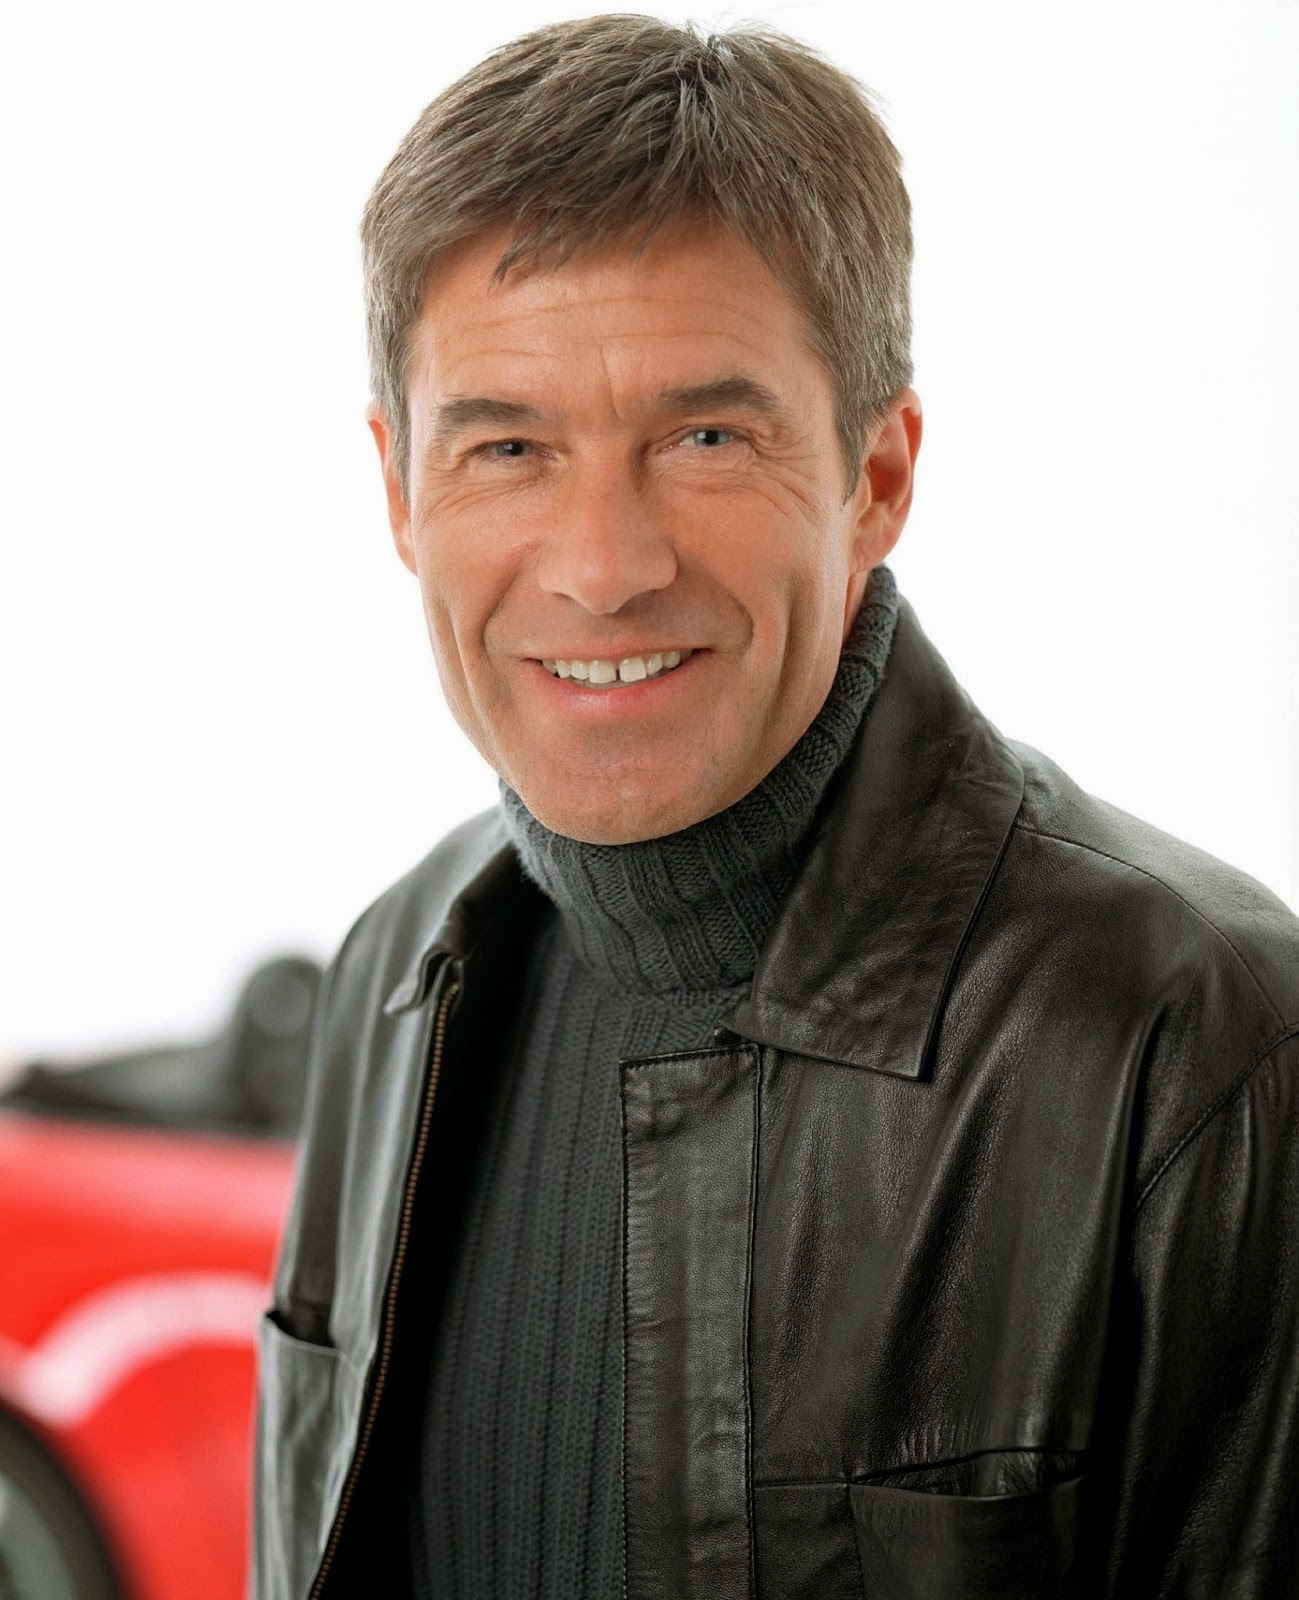 Tiff Needell, Top Gear, Fifth Gear, presenter